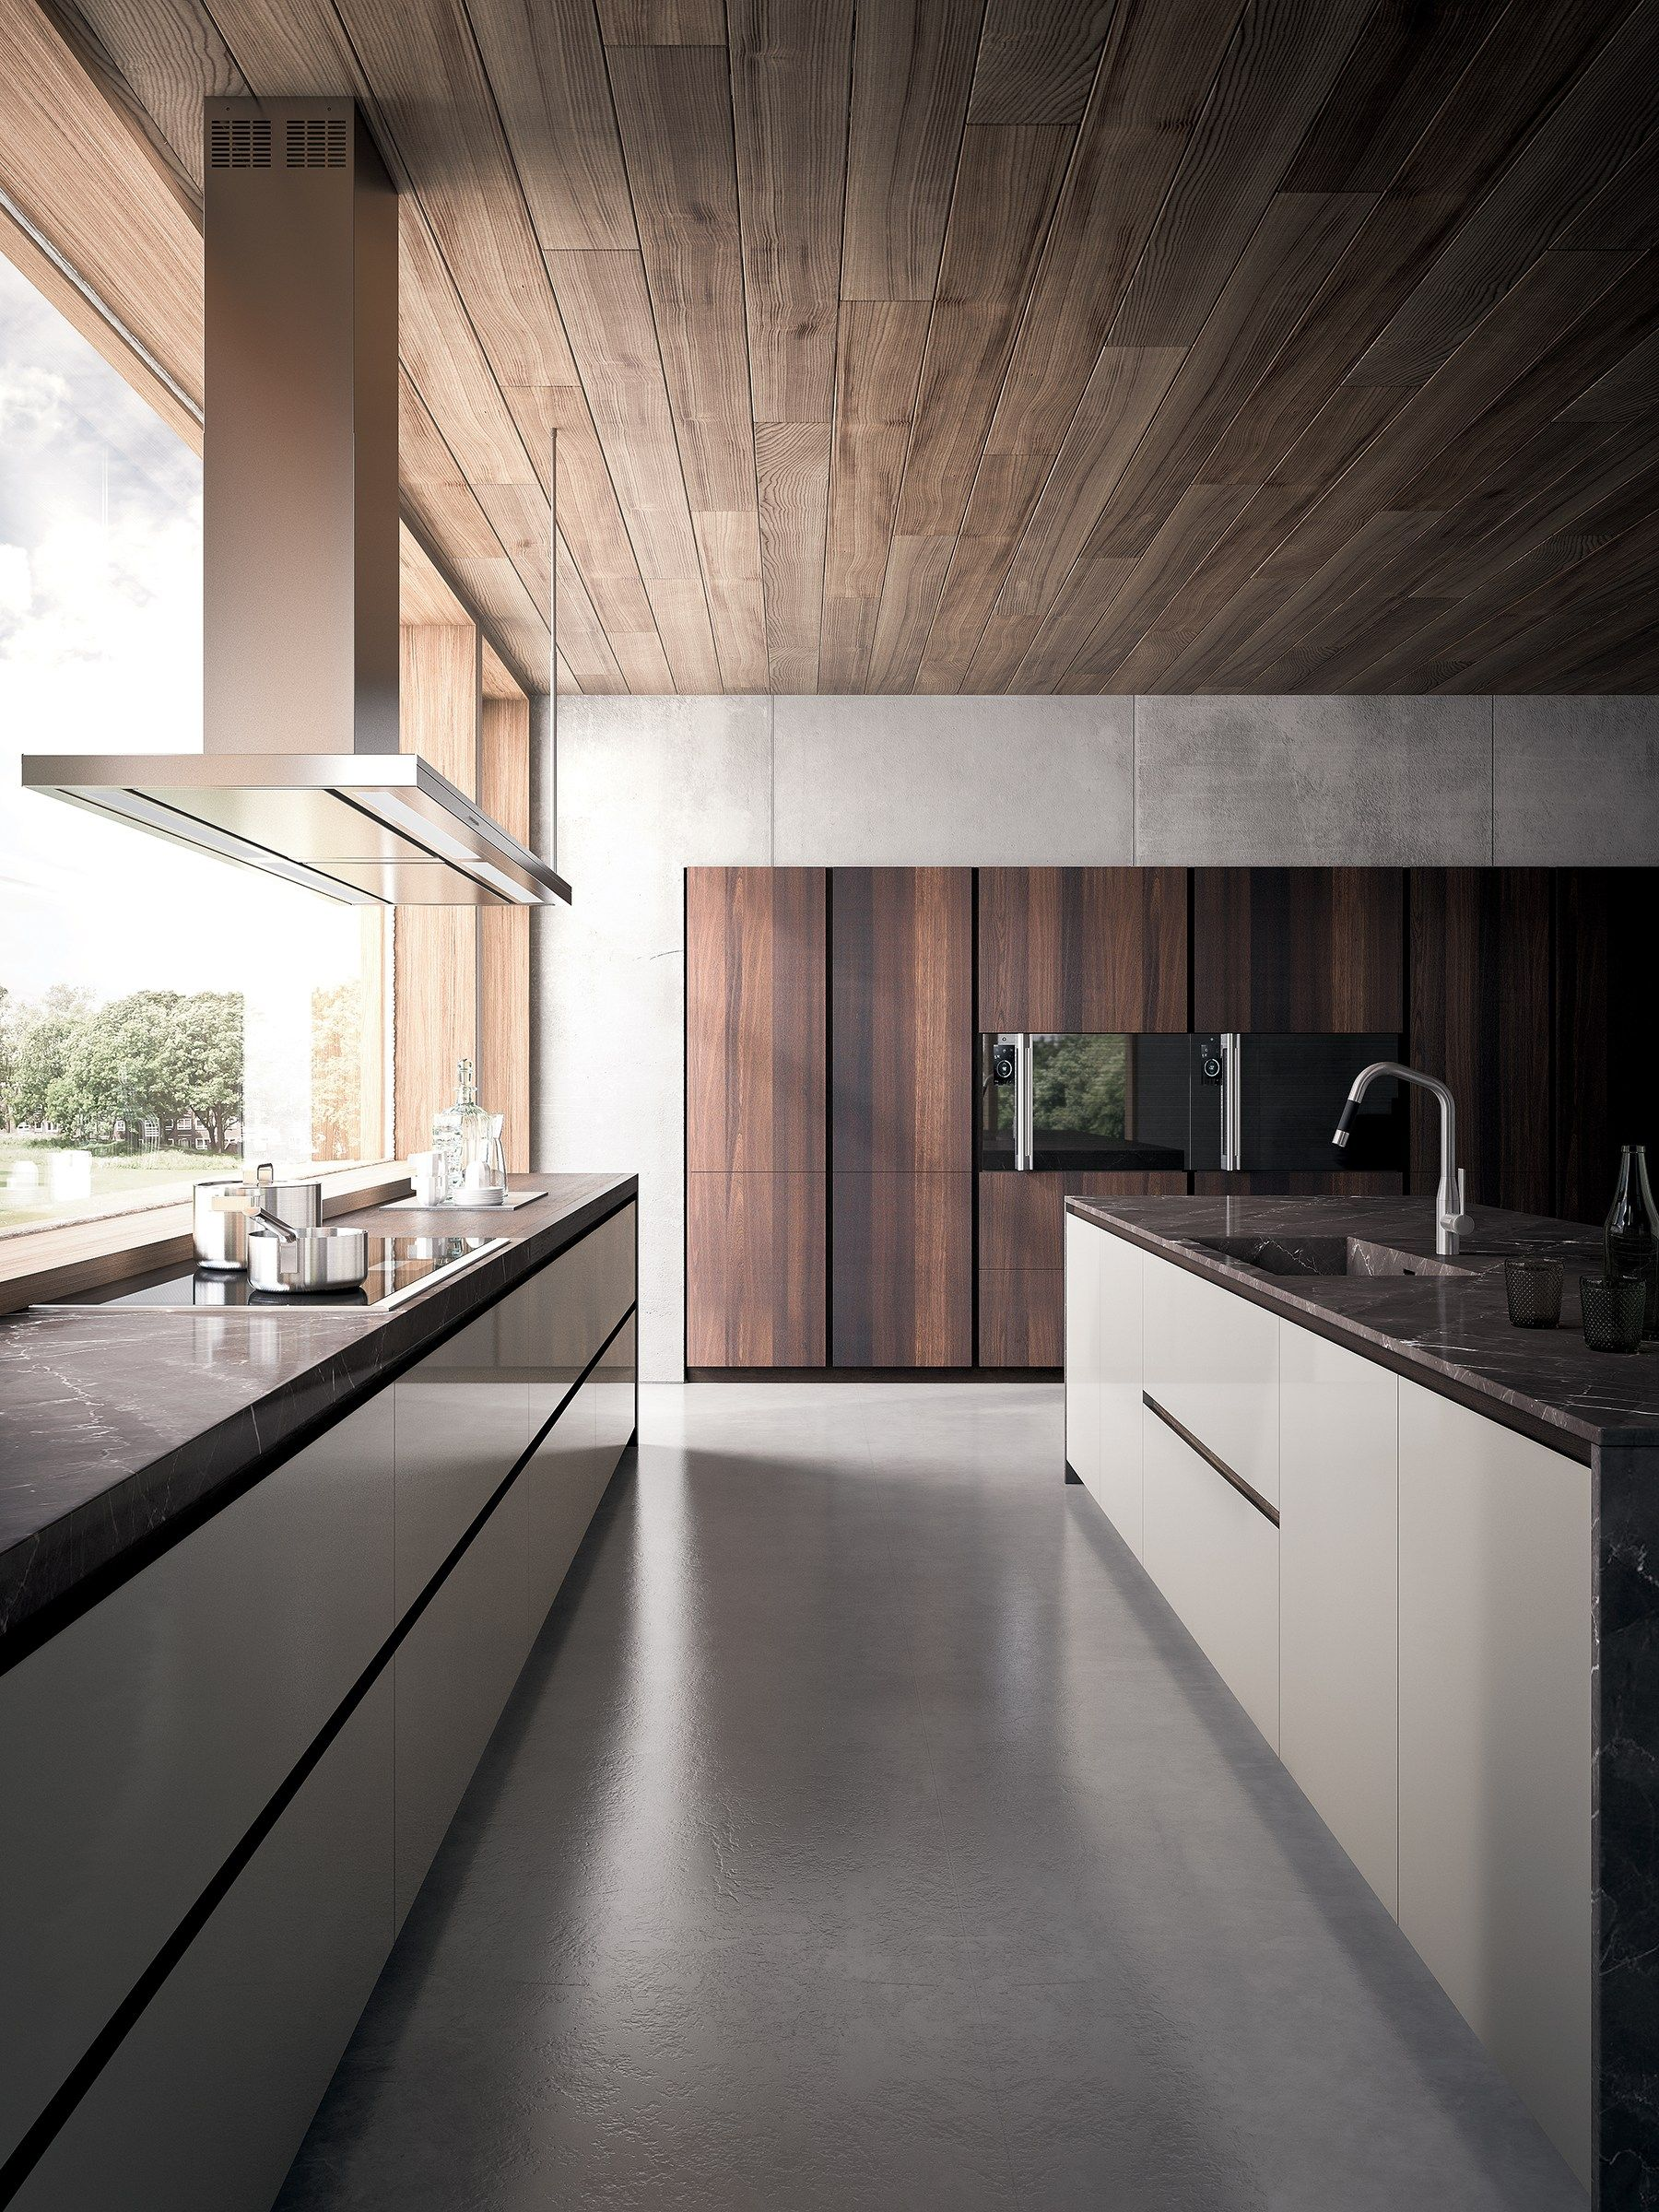 Velvet Elite By Gd Arredamenti Lacquered Wood Veneer Kitchen Contemporary Collection Modern Kitchen Design Modern Kitchen Interior Design Kitchen